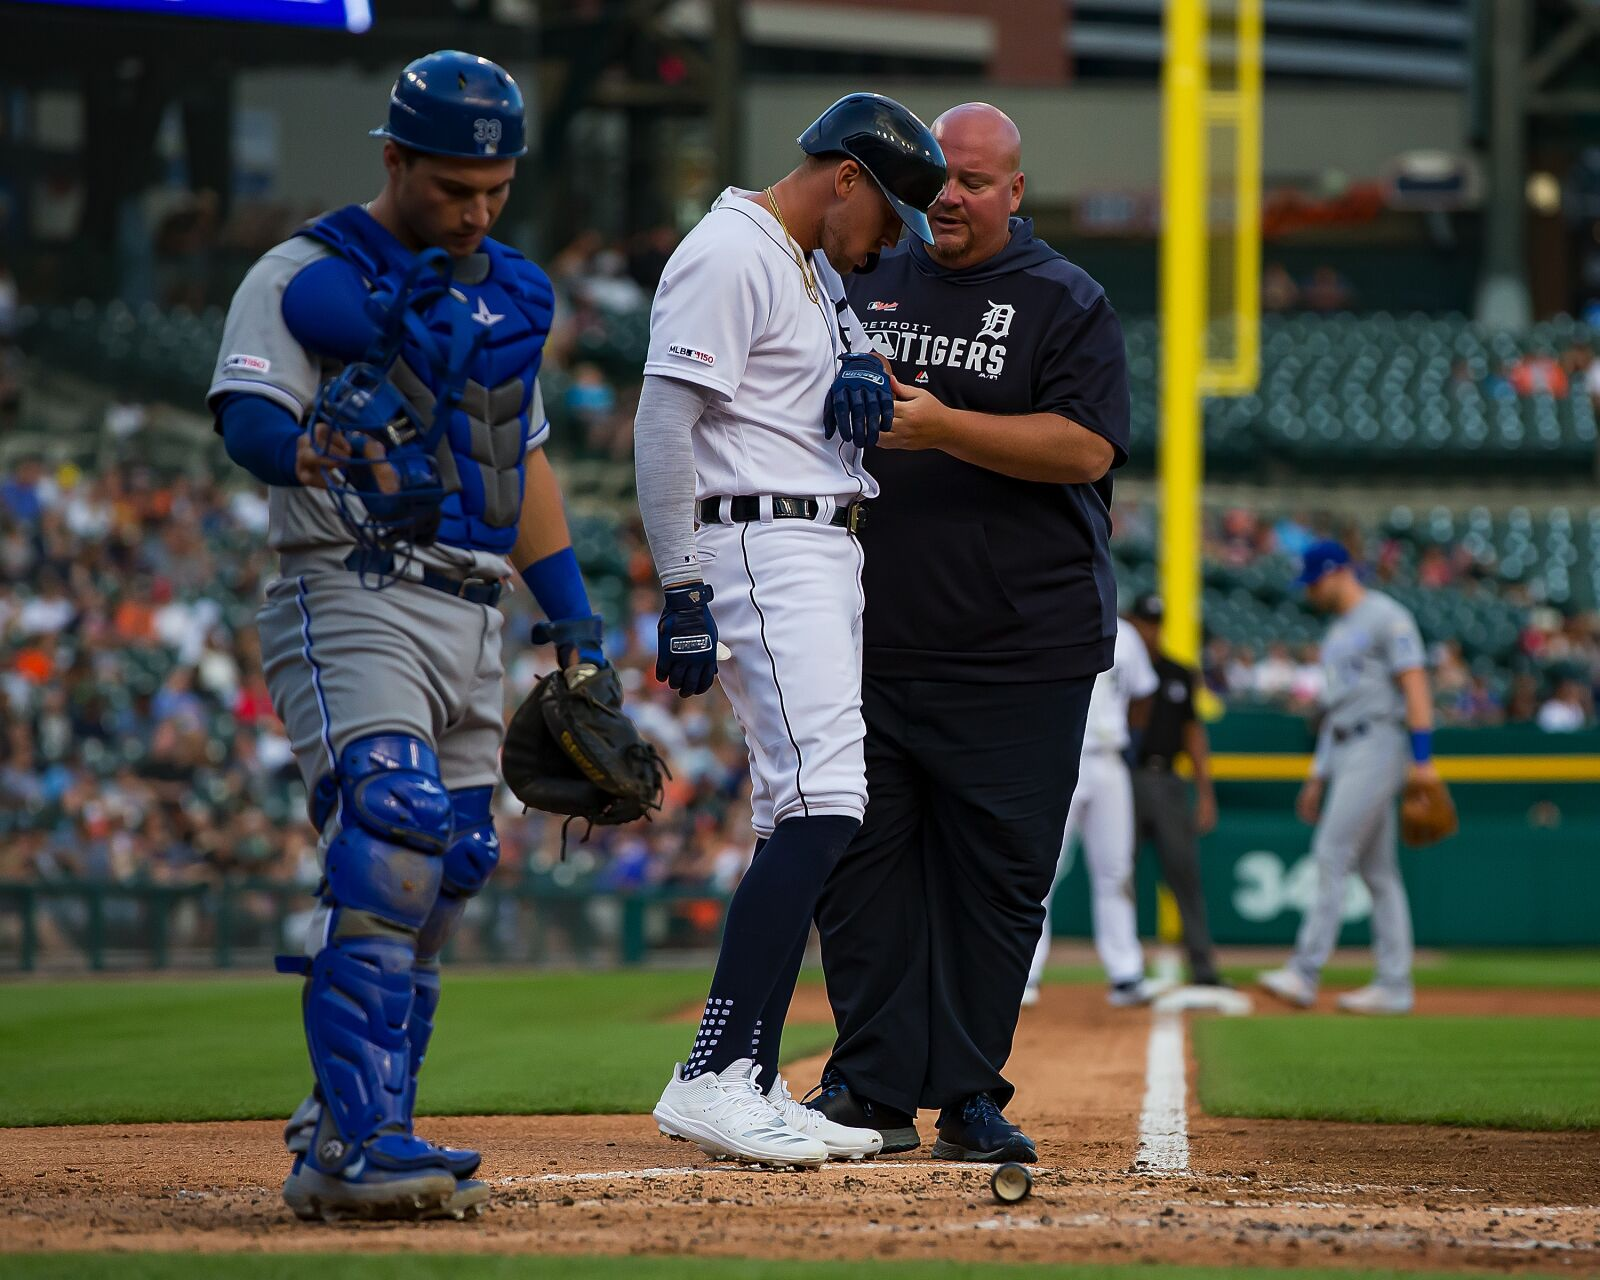 Detroit Tigers: JaCoby Jones likely out for rest of season